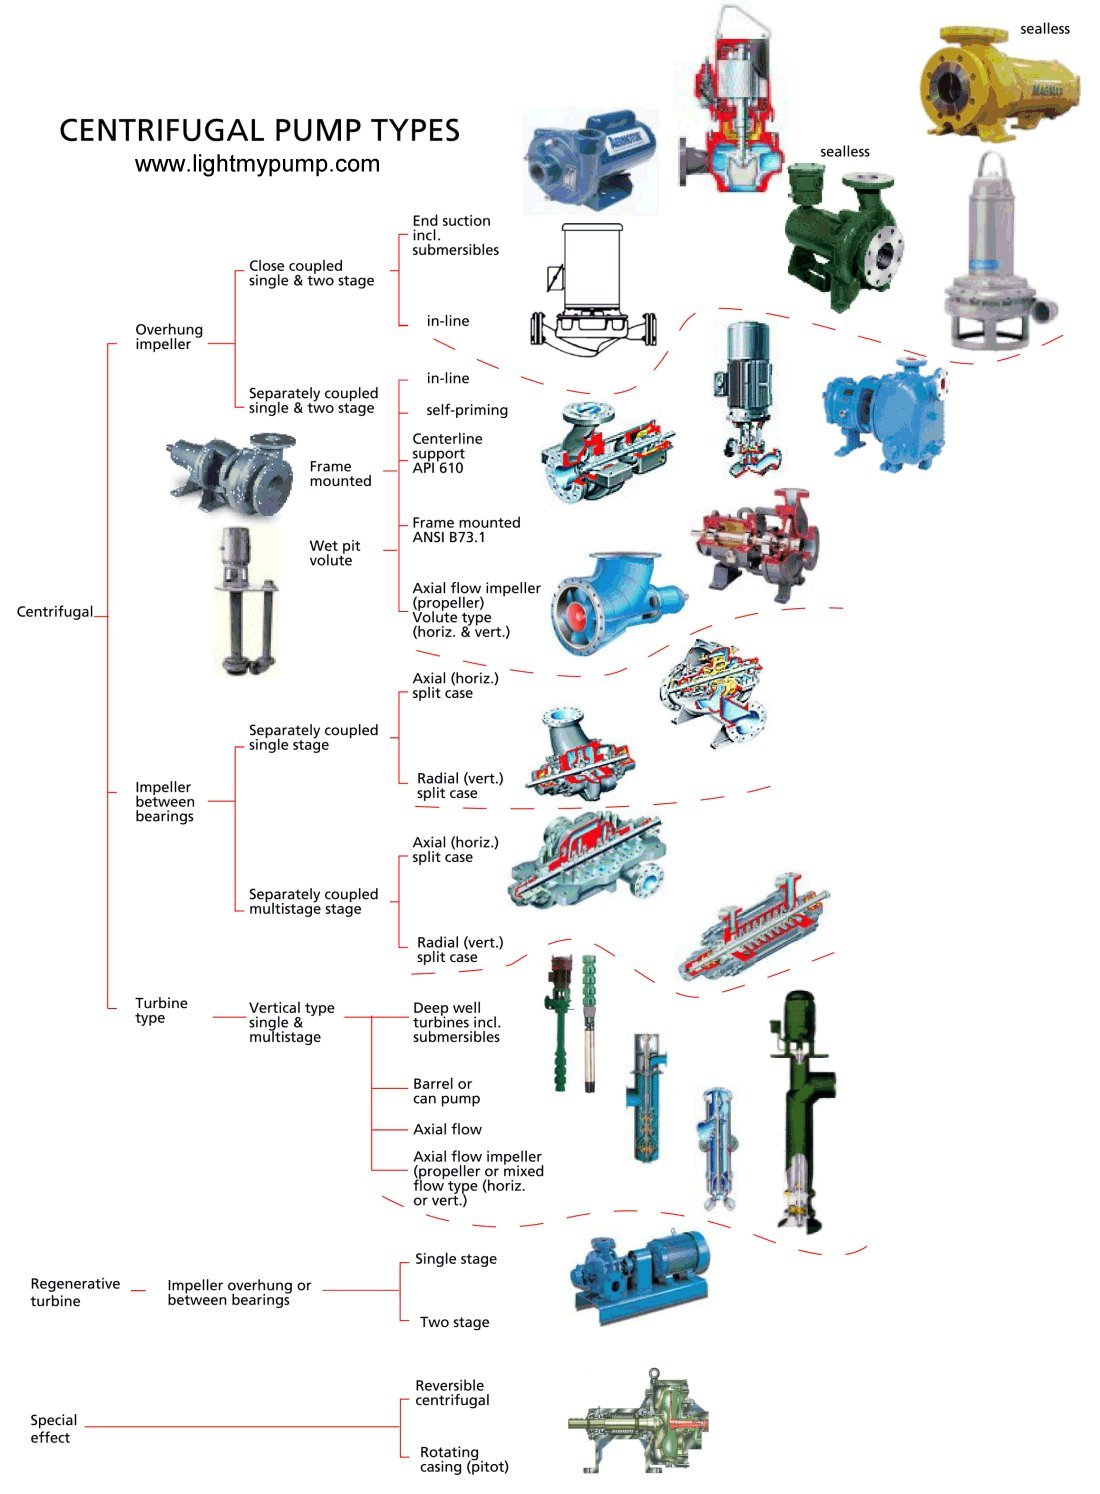 Wait for the image download....This chart tells you what type of pump you have, click on a pump image and you get more information about what the typical applications are and who makes them, you can even get a typical parts drawing from the Hydraulic Institute.